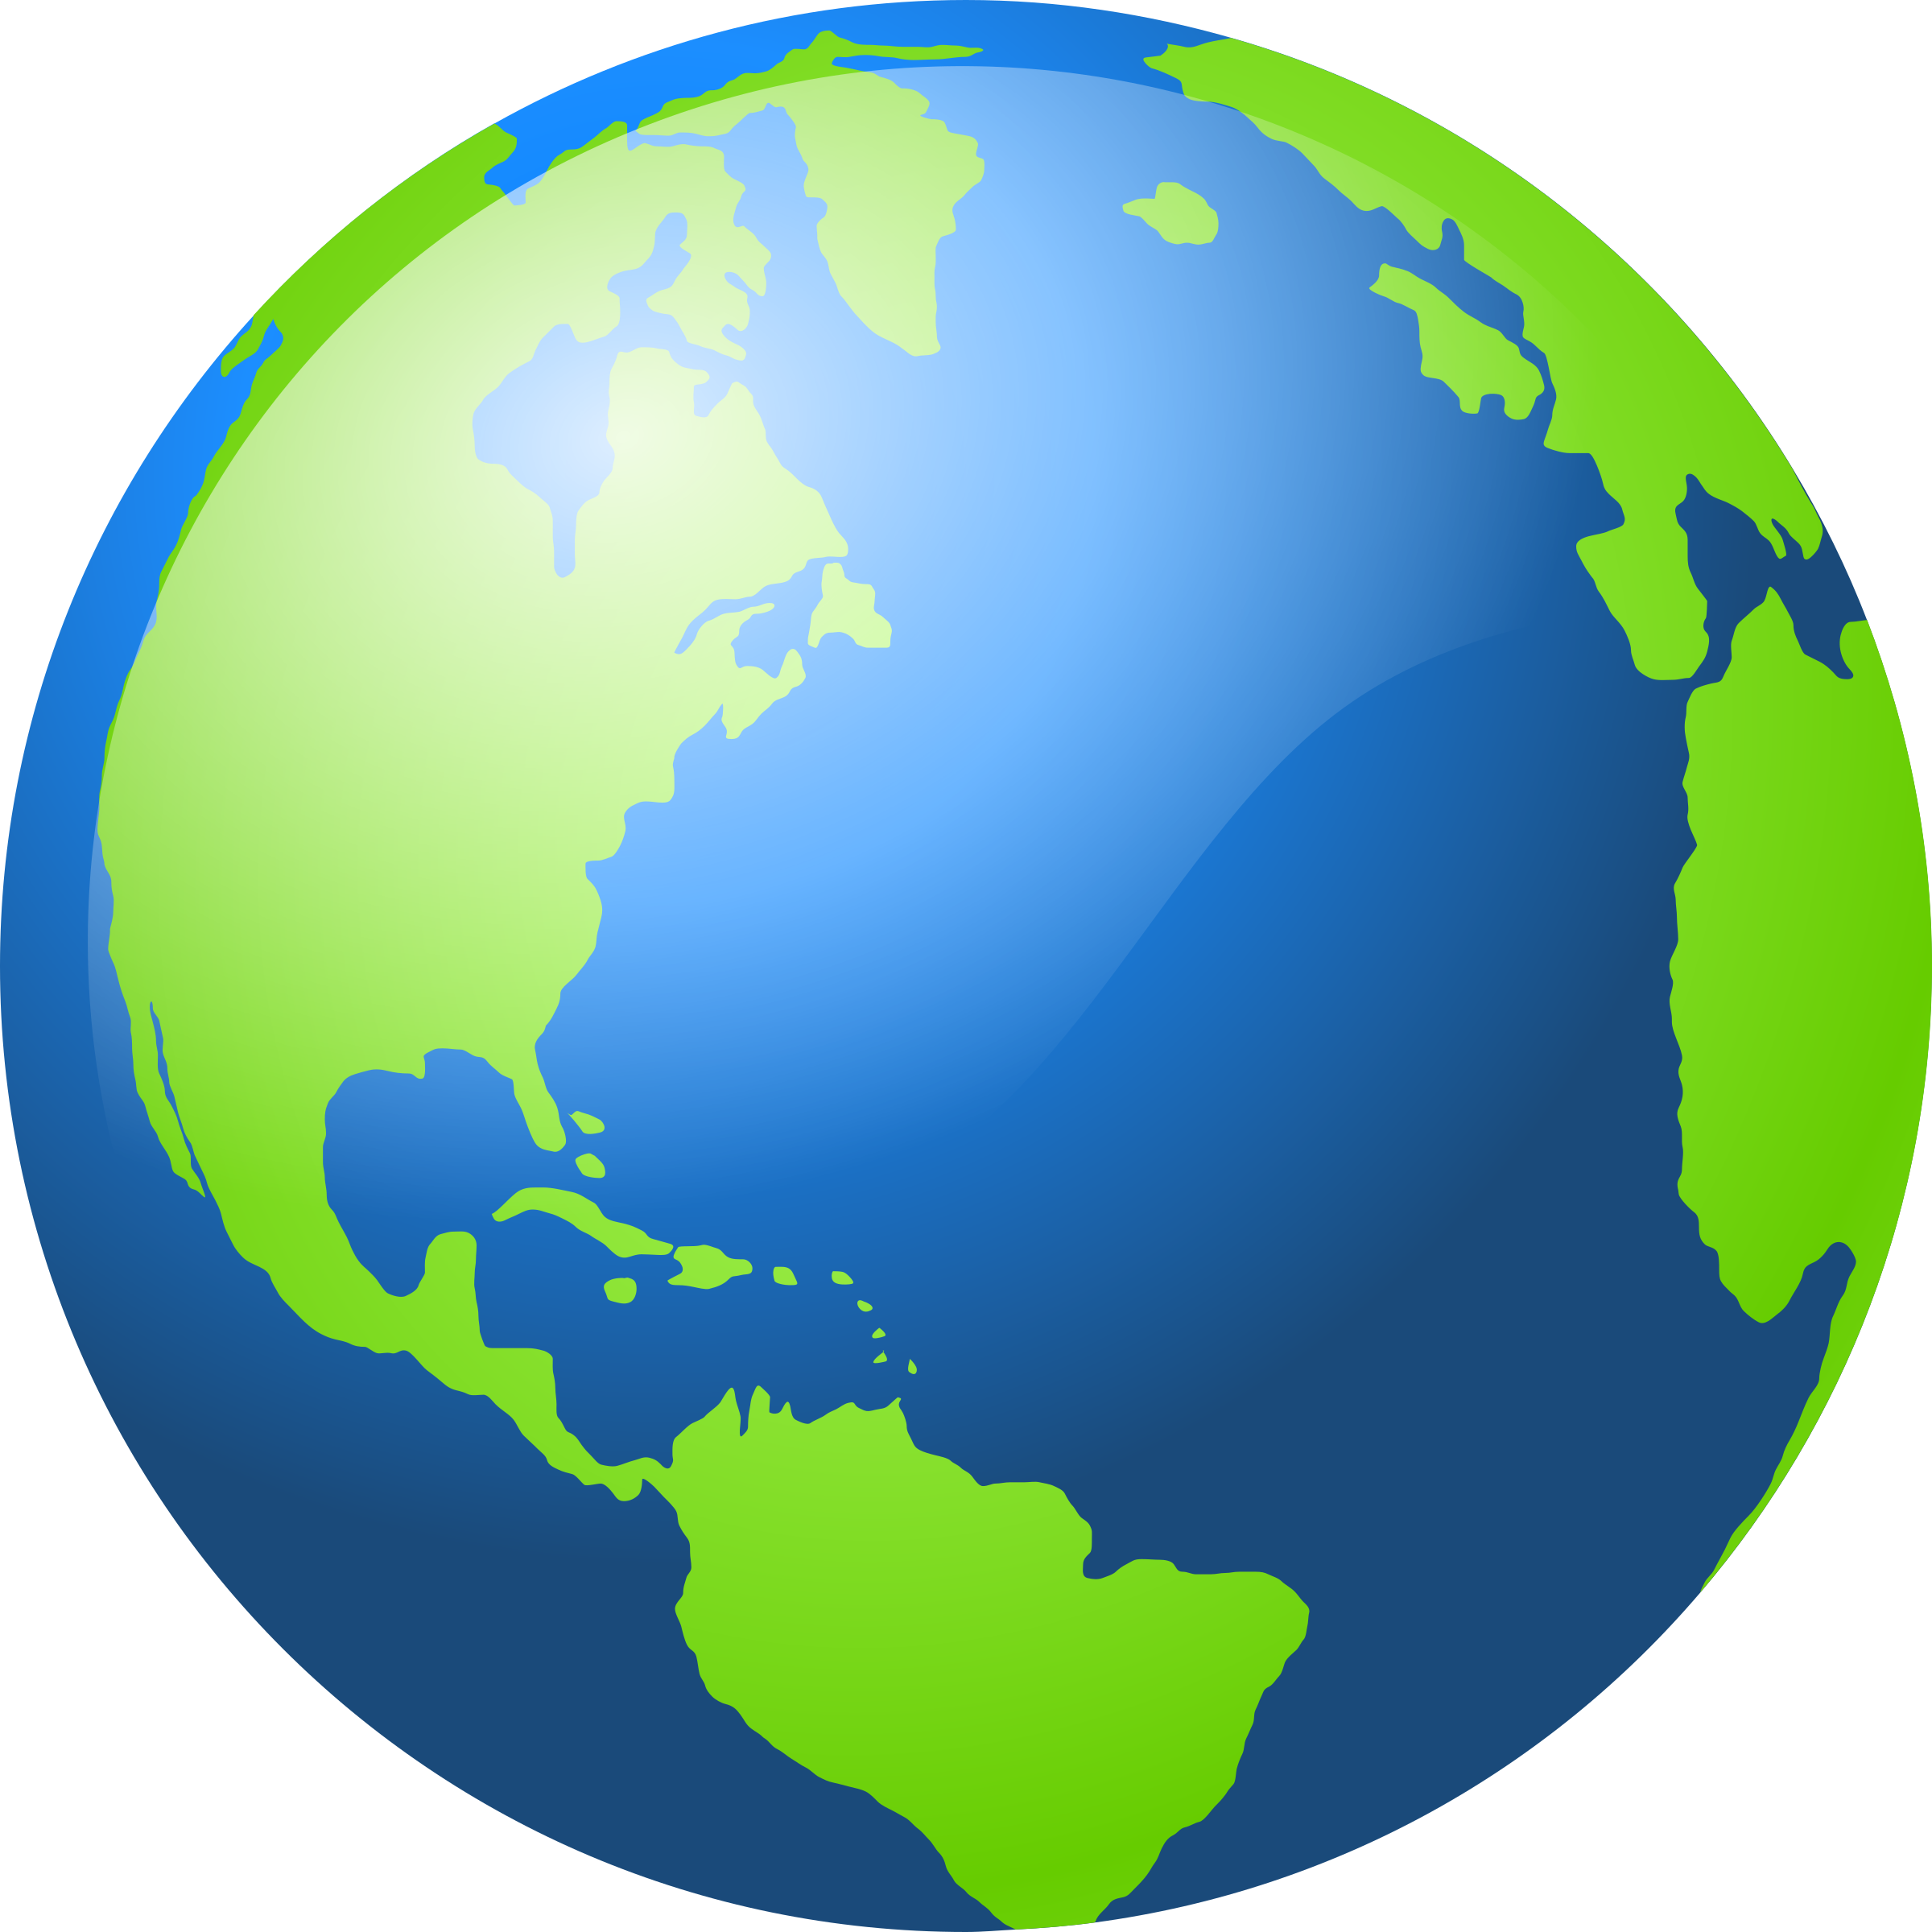 Globe png transparent background. Earth image purepng free